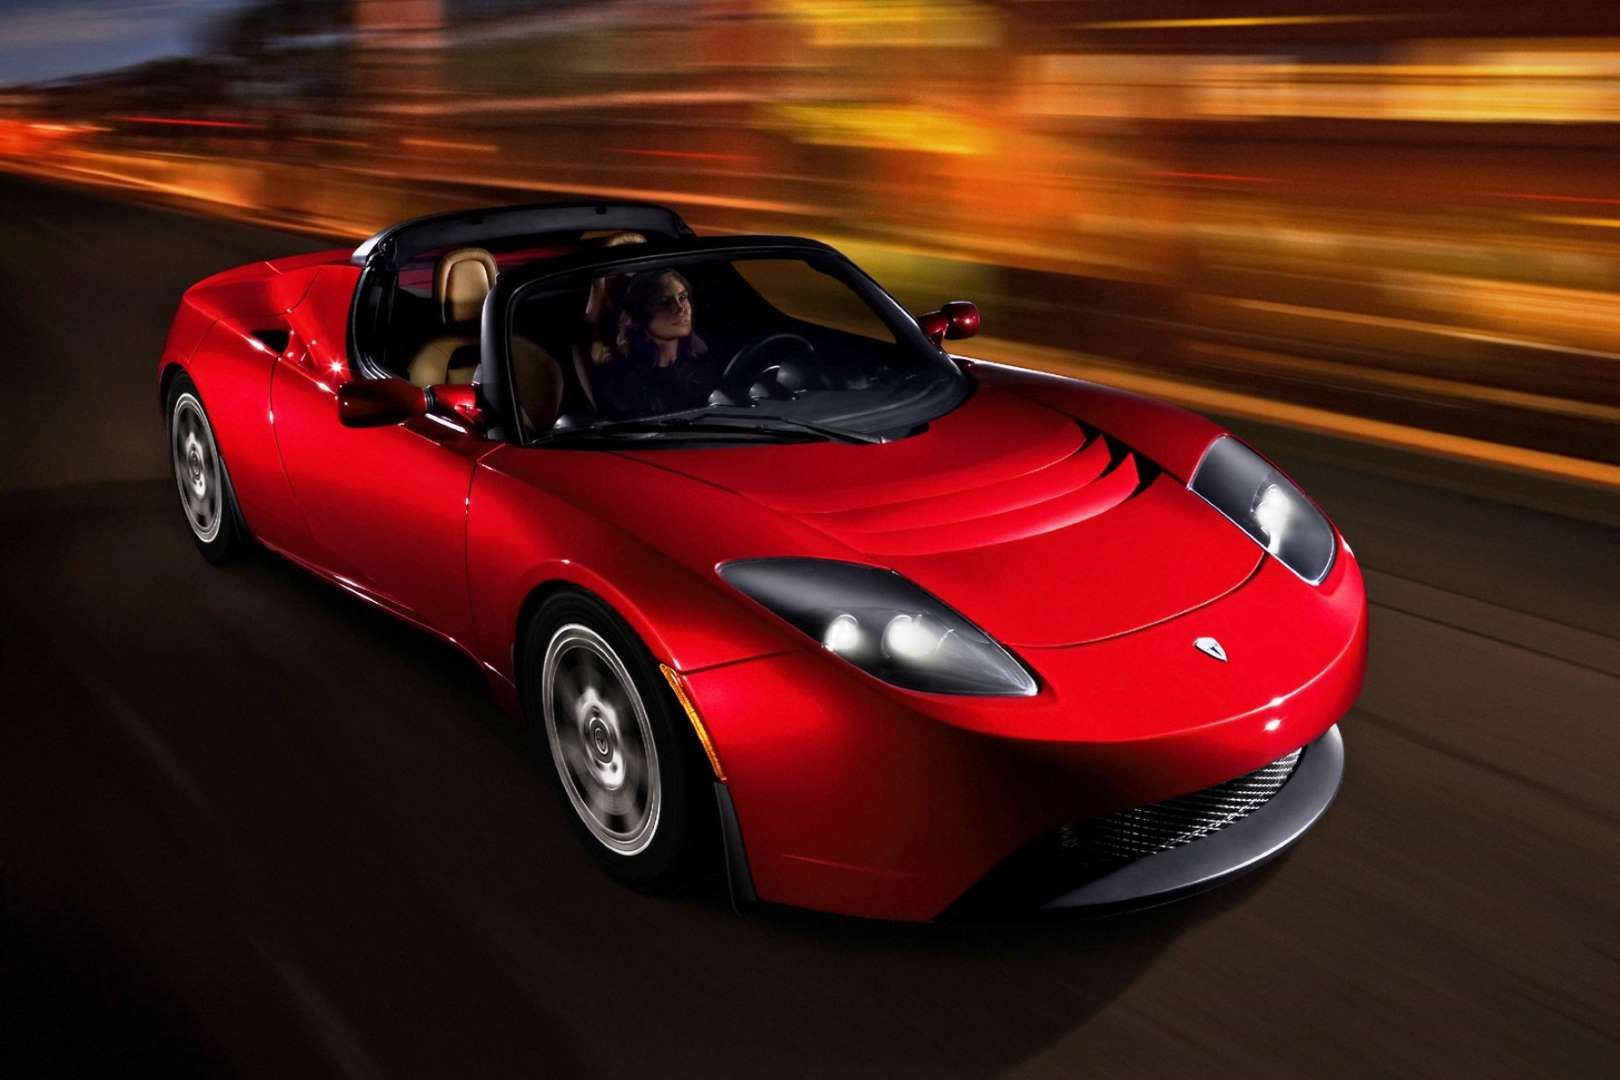 Tesla's first car was a 100 electric sports car based on